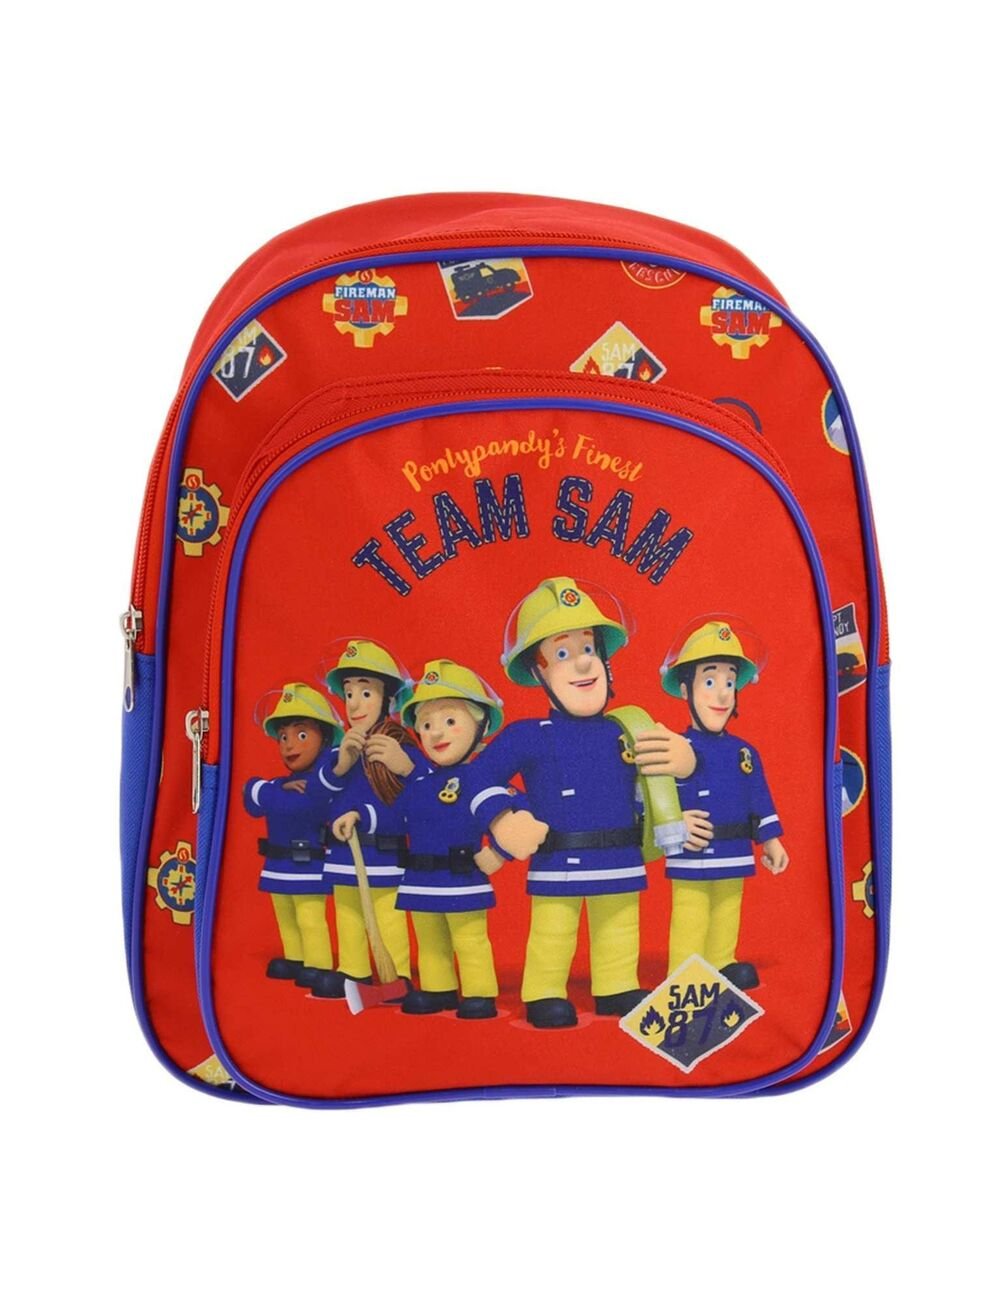 Fireman Sam backpack.